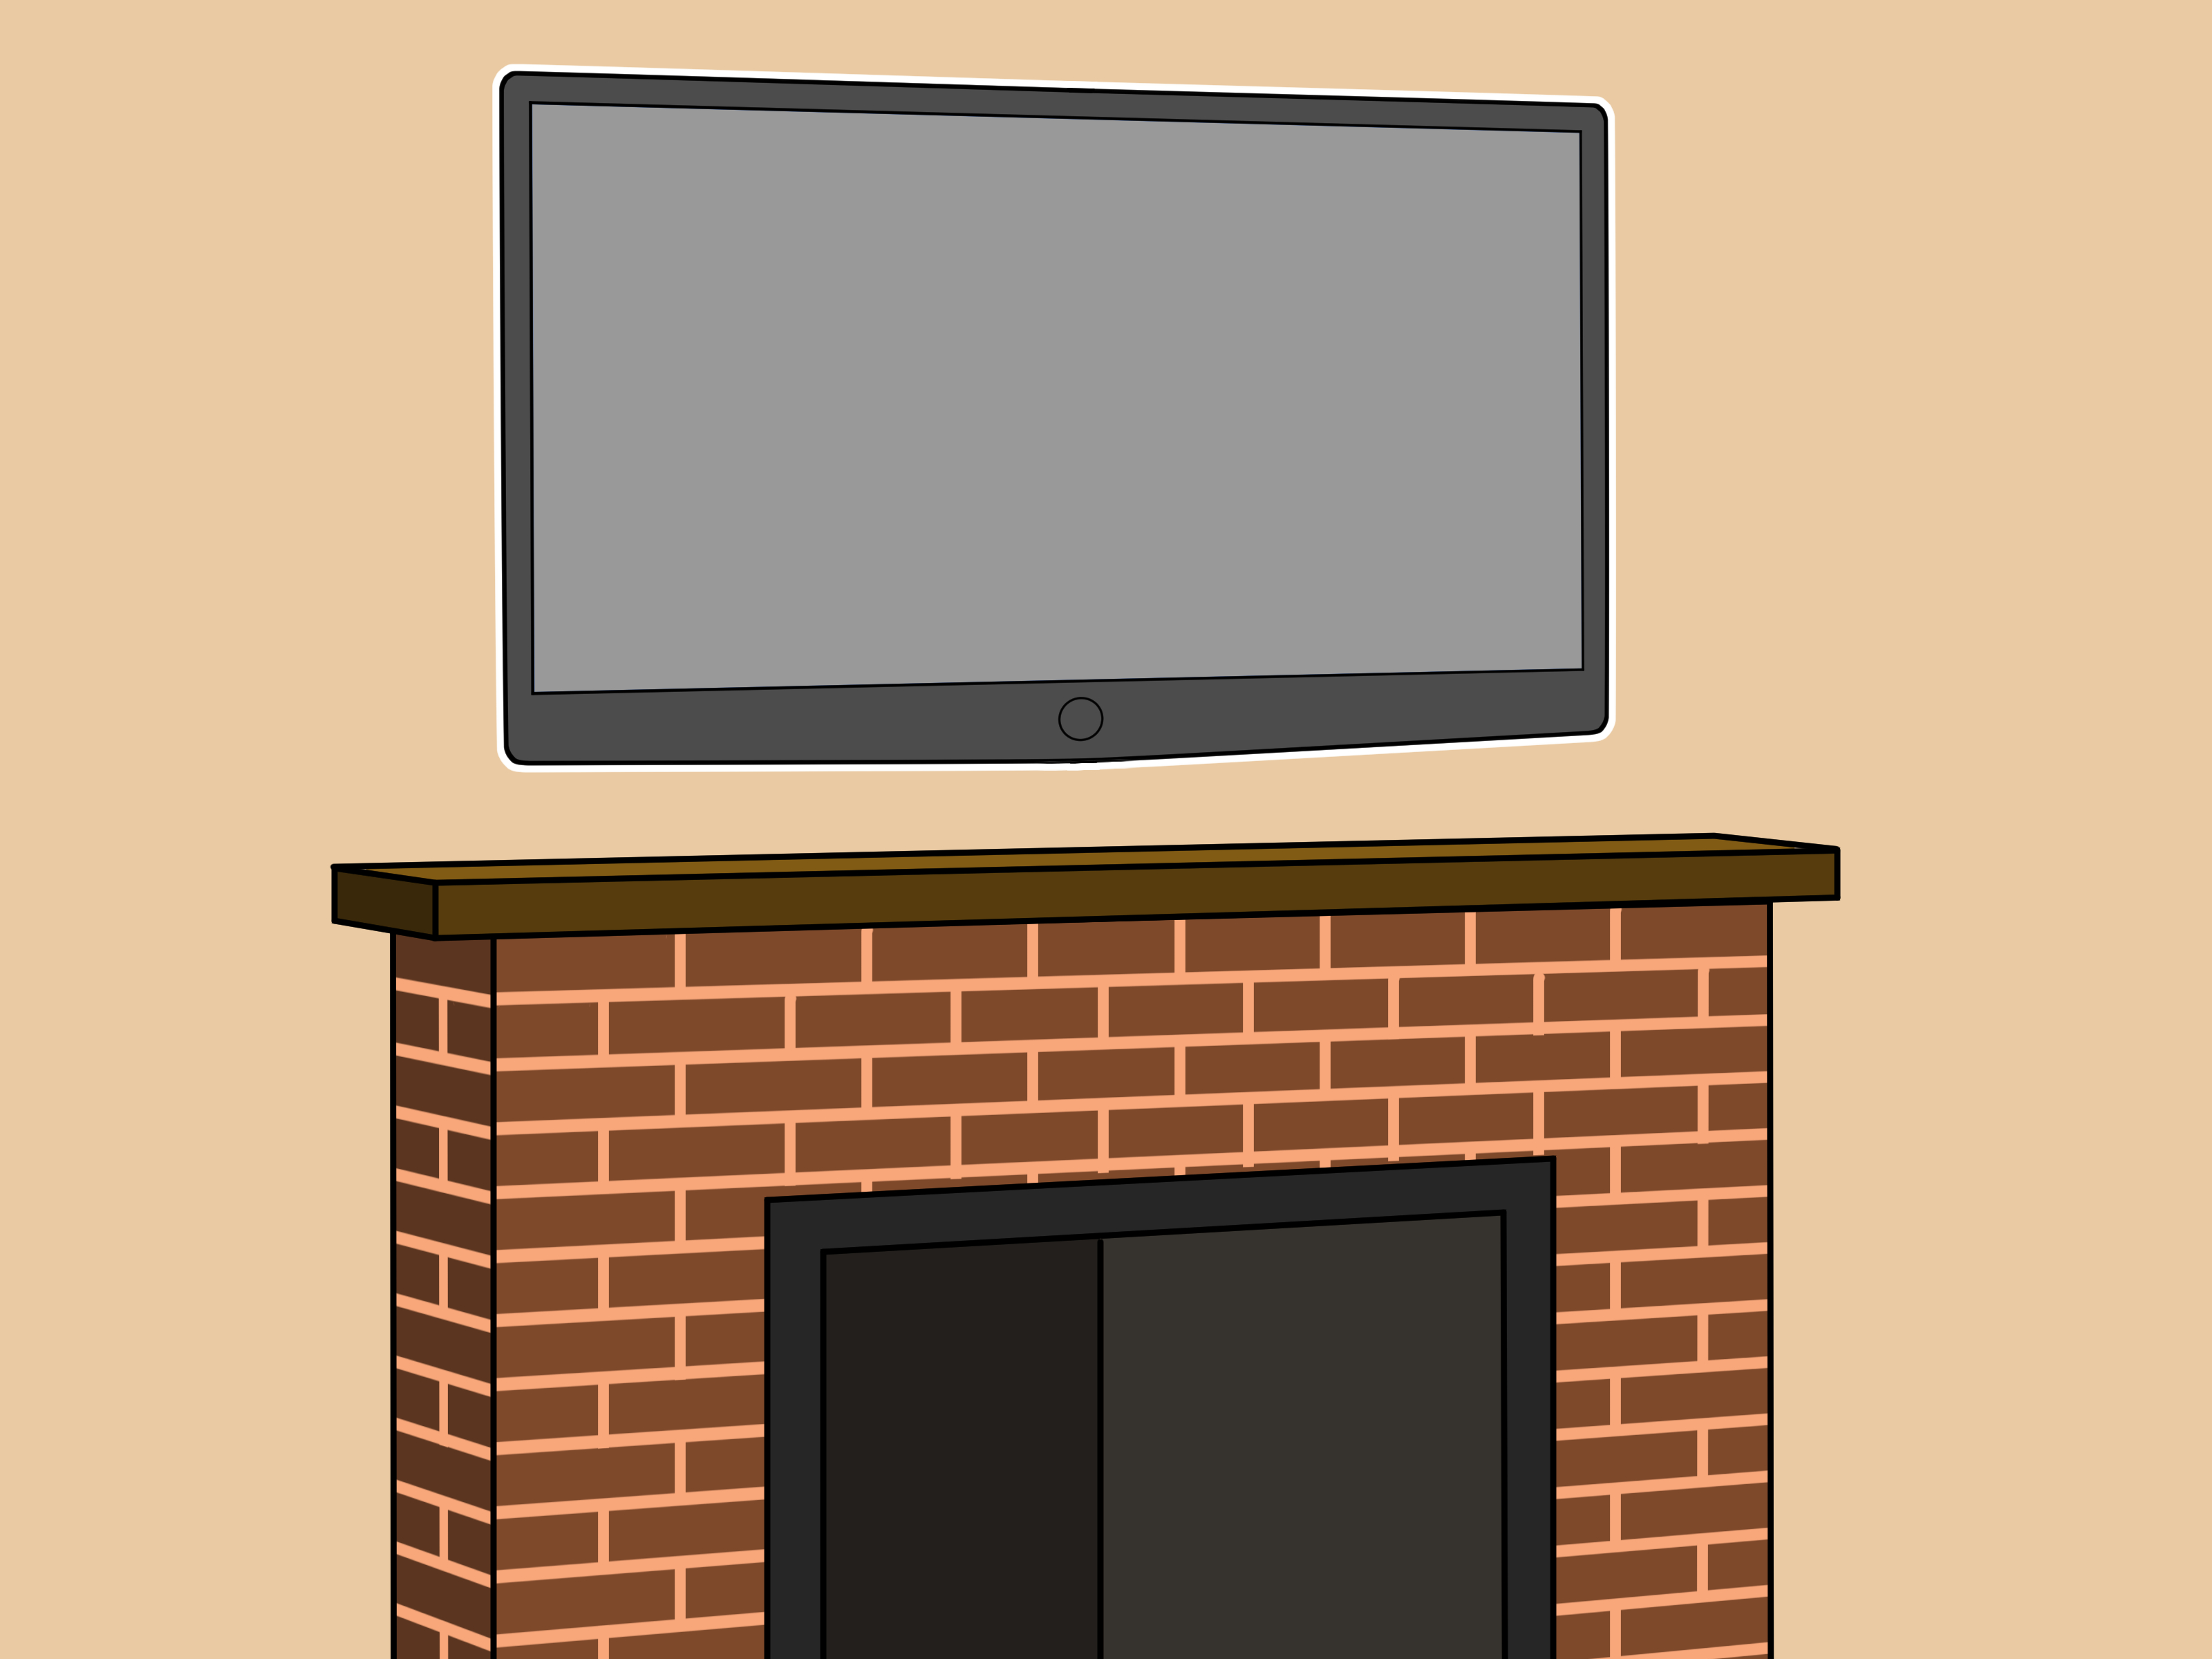 Hang Your Tv How To Hang A Plasma Tv Over The Fireplace 6 Steps